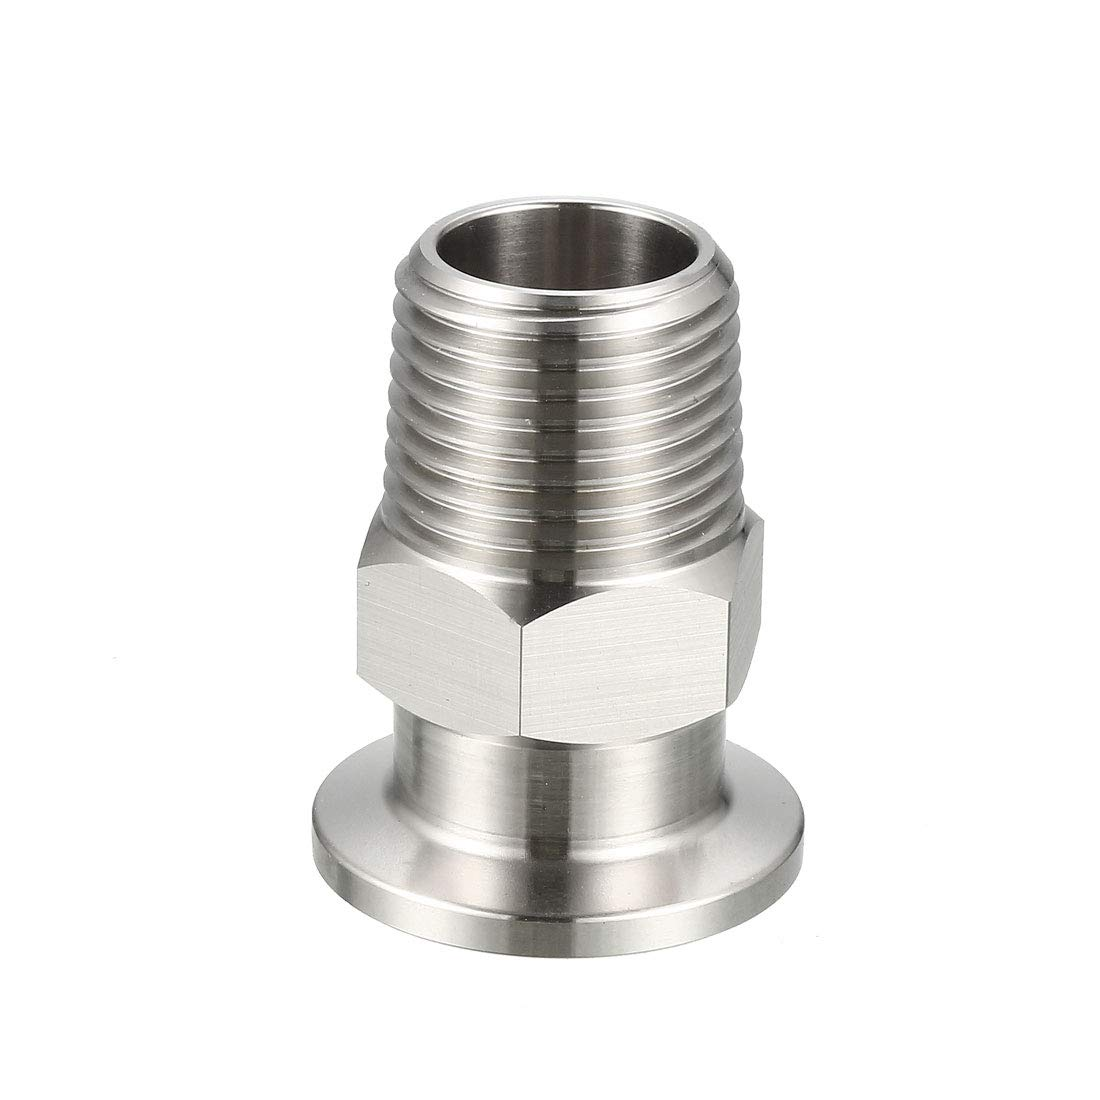 uxcell Sanitary Pipe Fitting KF16 Male Threaded 1//2 PT to Clamp OD 30mm Ferrule